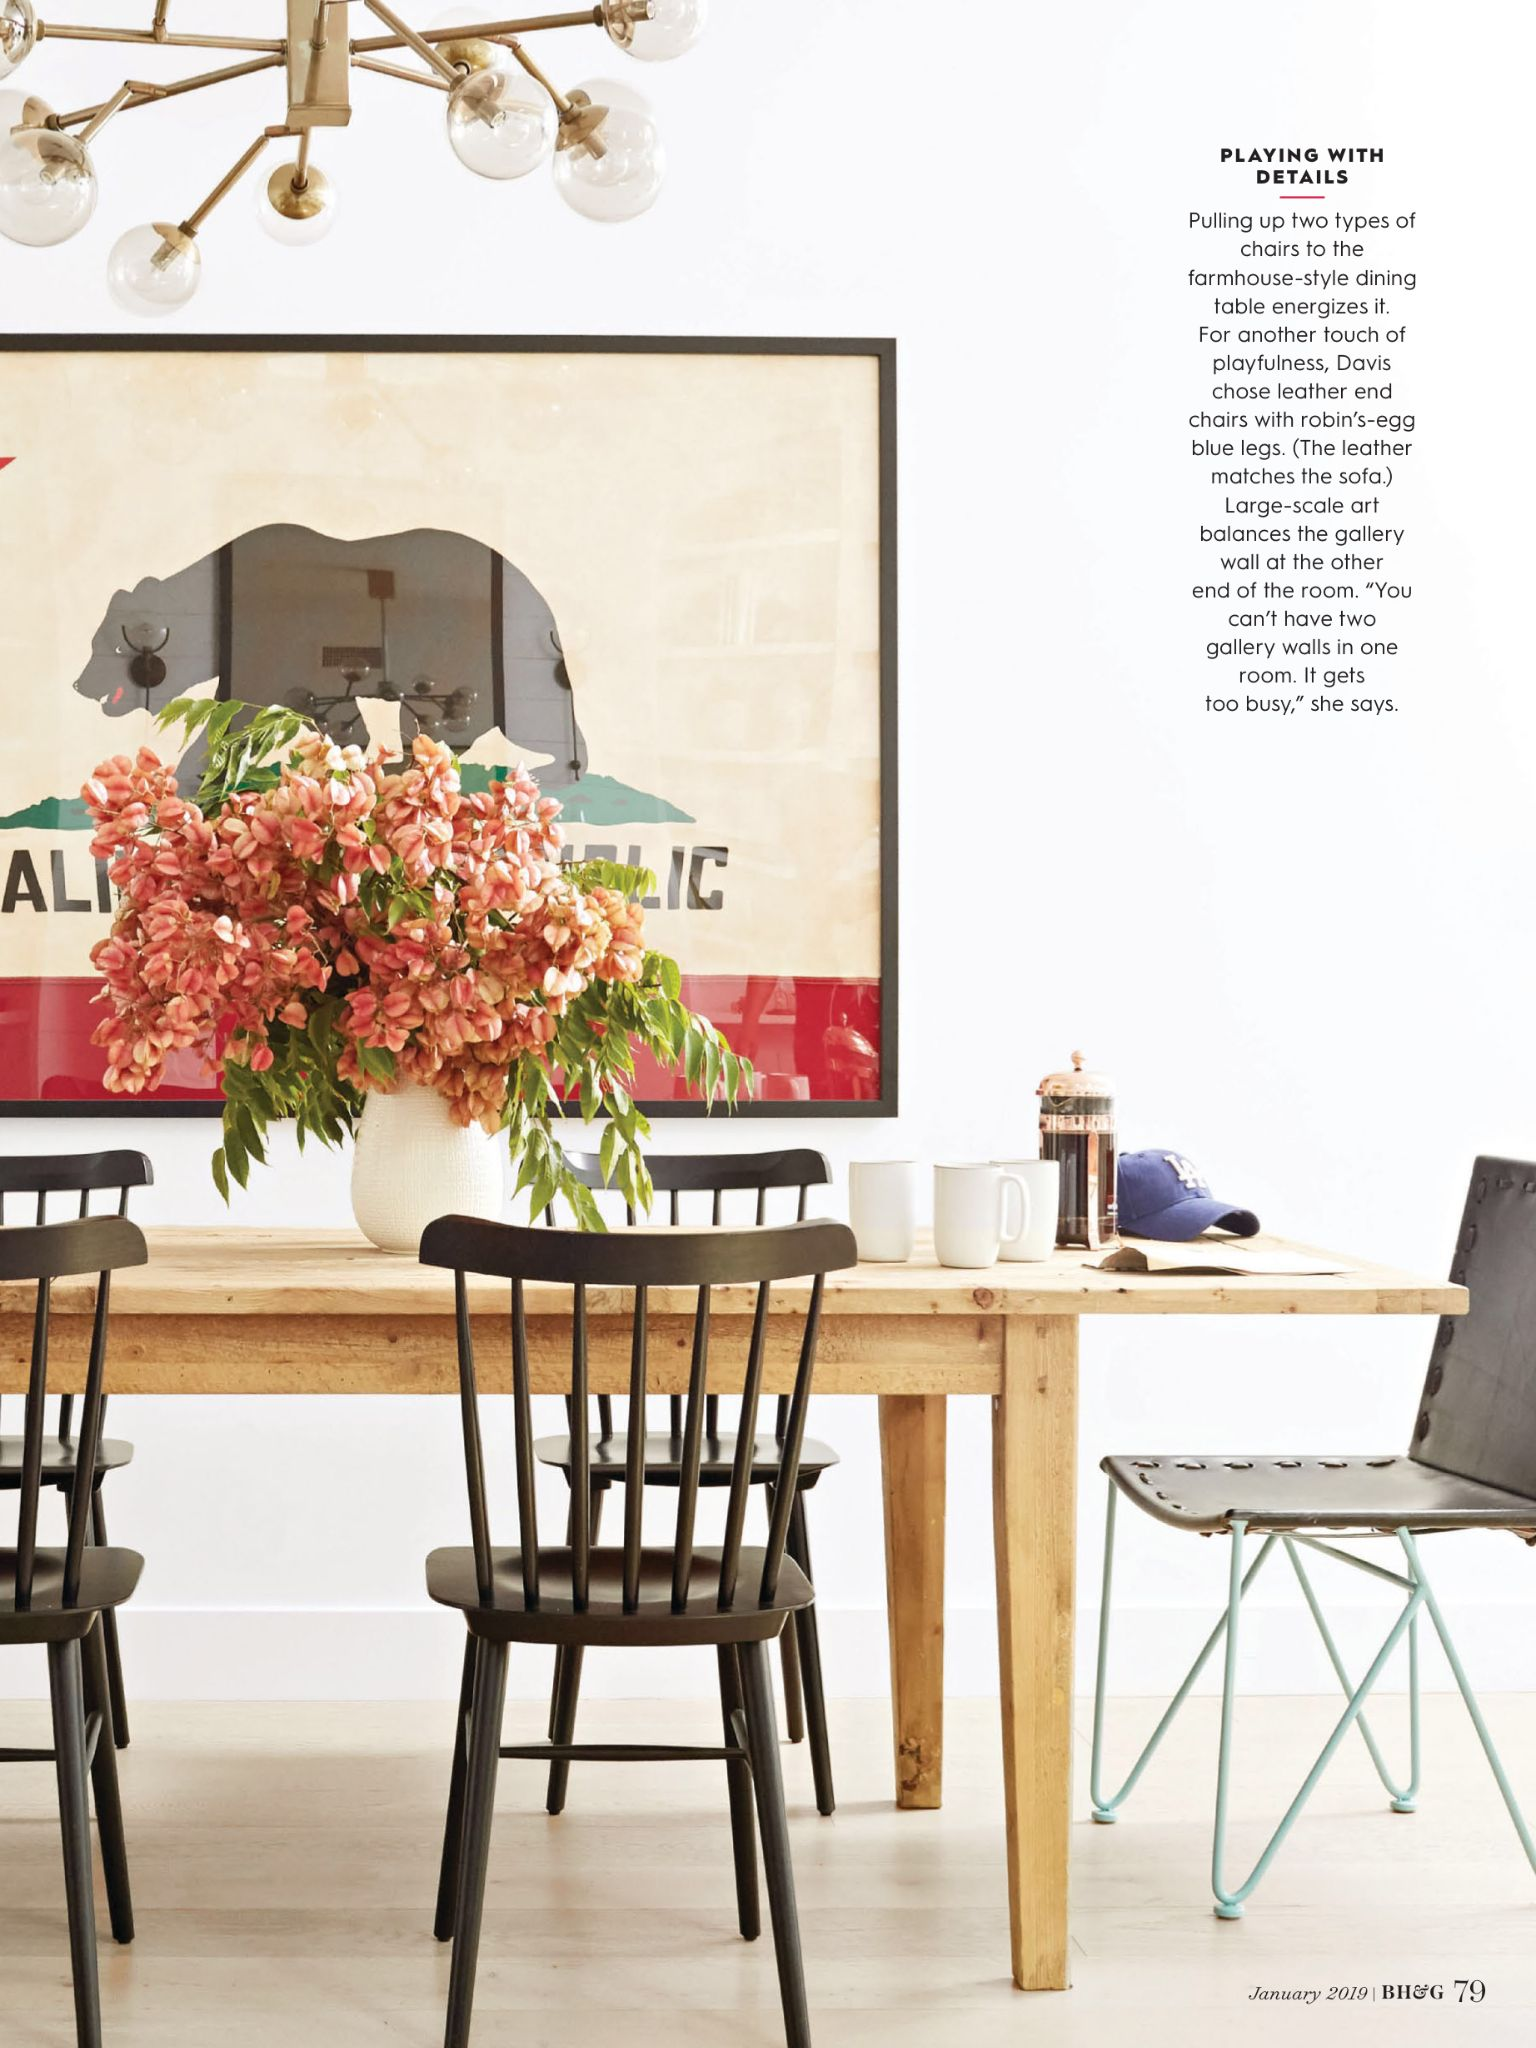 51ad9d5c7366939adf5db970258a681a - January 2019 Better Homes And Gardens Magazine